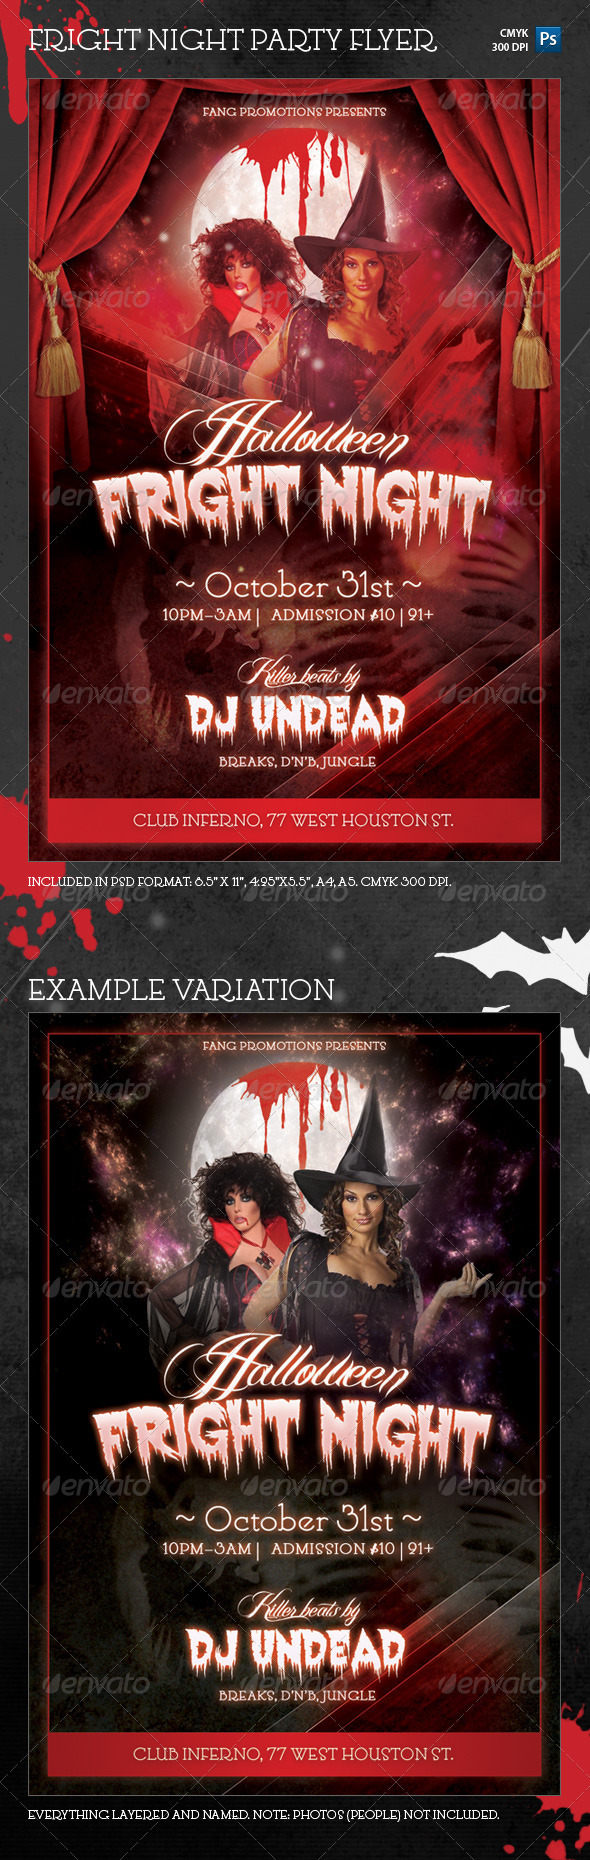 Halloween Fright Night Party Flyer Template - Clubs & Parties Events